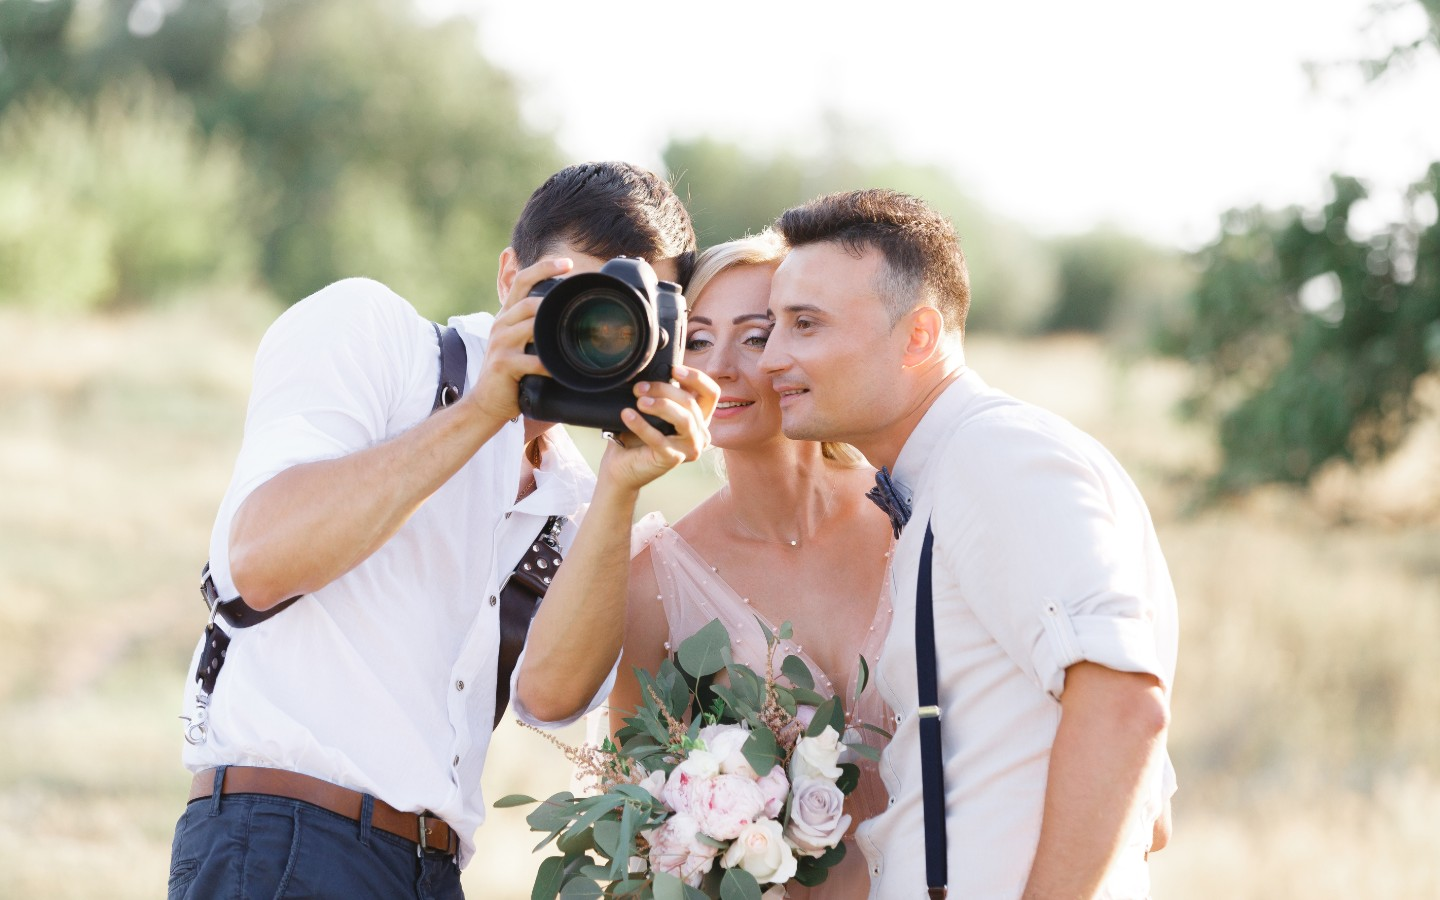 Wedding Marketing: Wedding photographer showing bride and groom photos